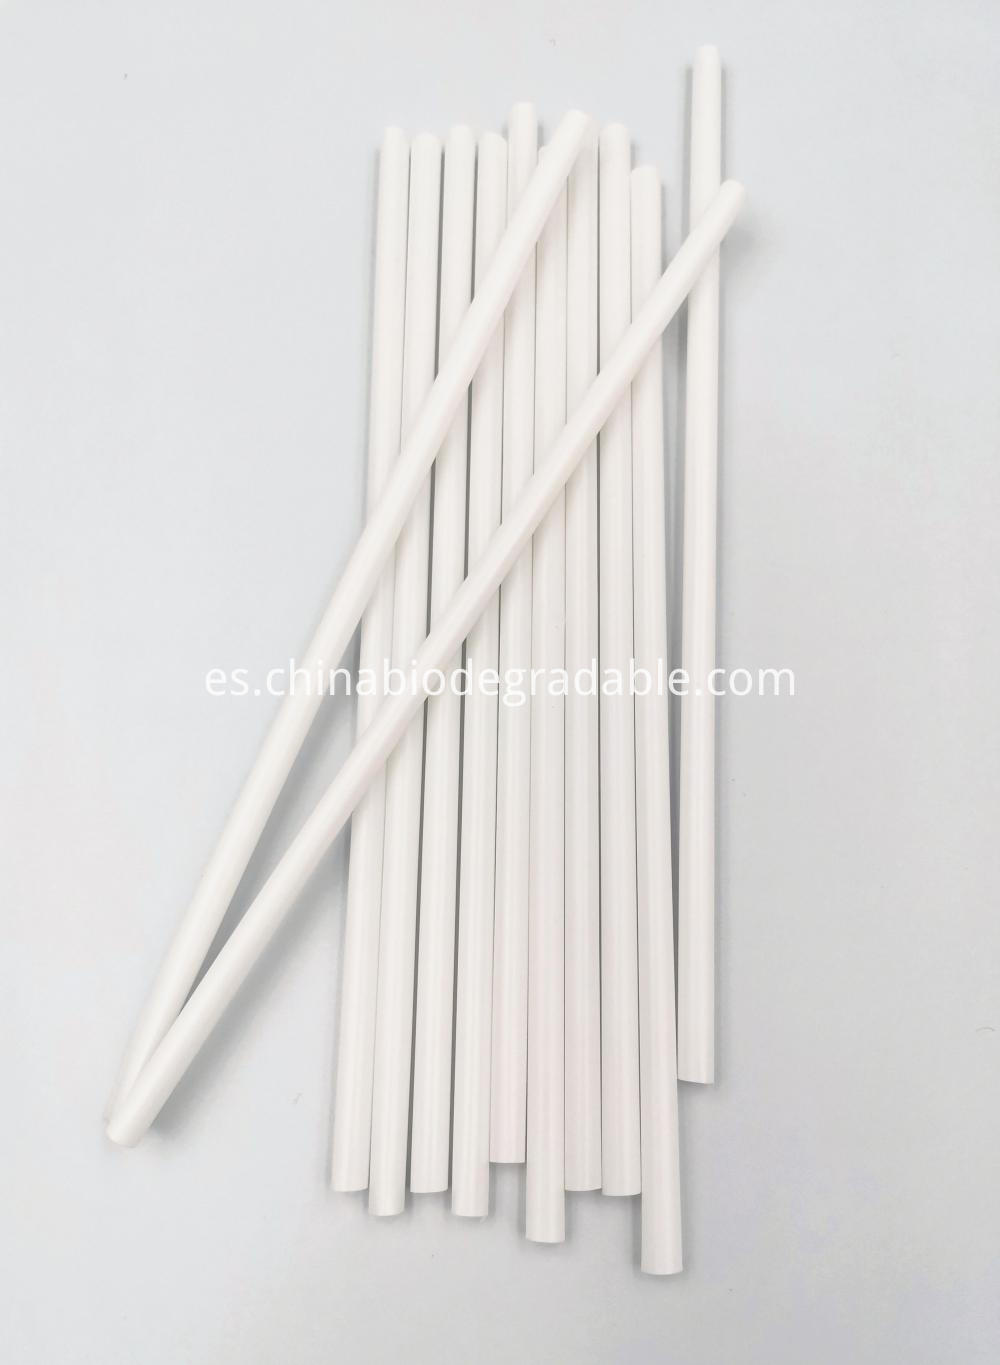 Custom Printed Disposable Drinking Plastic Straws